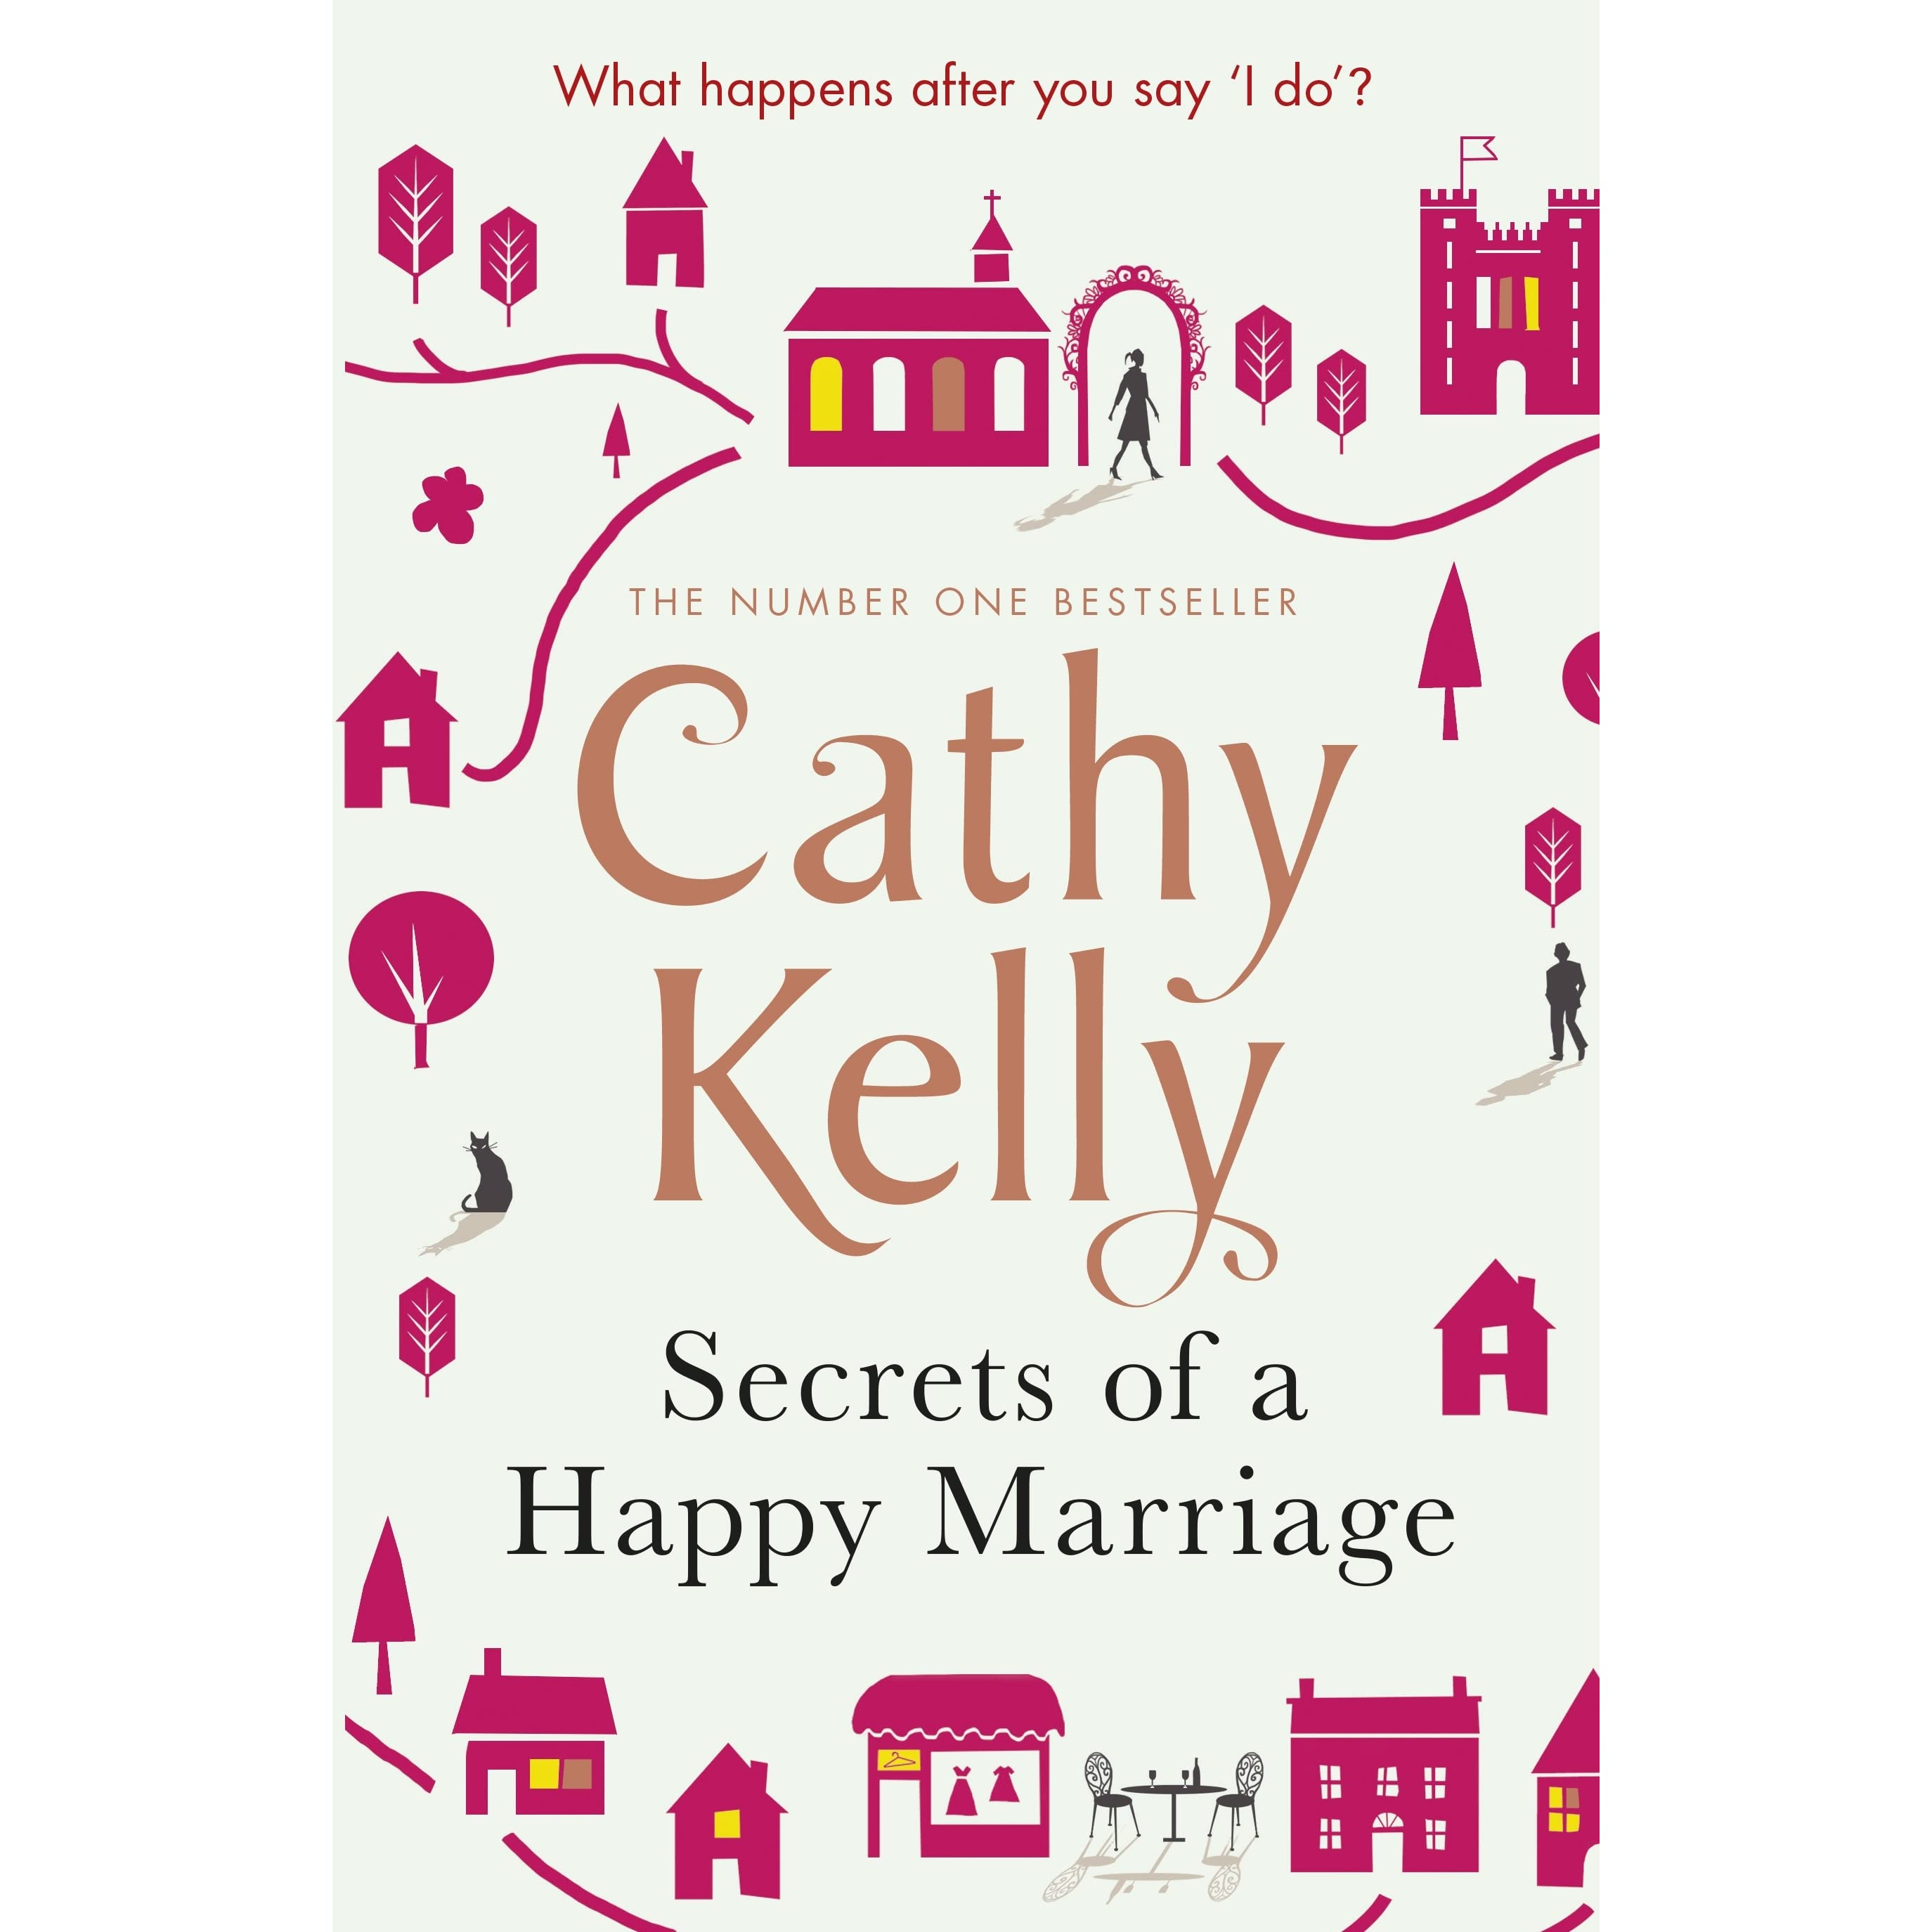 Book Giveaway For Secrets Of A Happy Marriage By Cathy